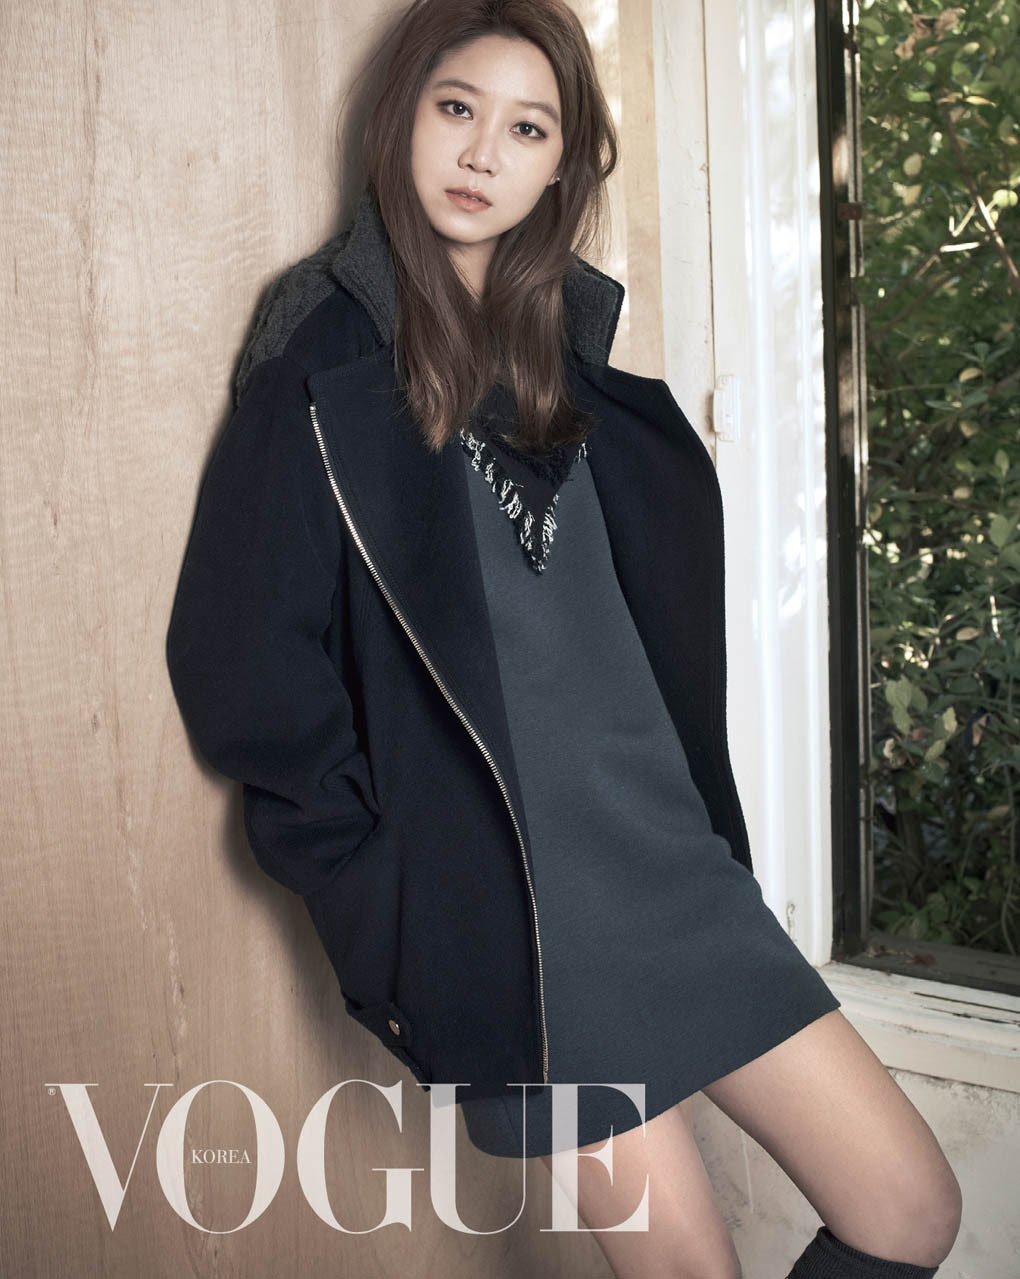 Gong Hyo Jin - Vogue Magazine November Issue '14